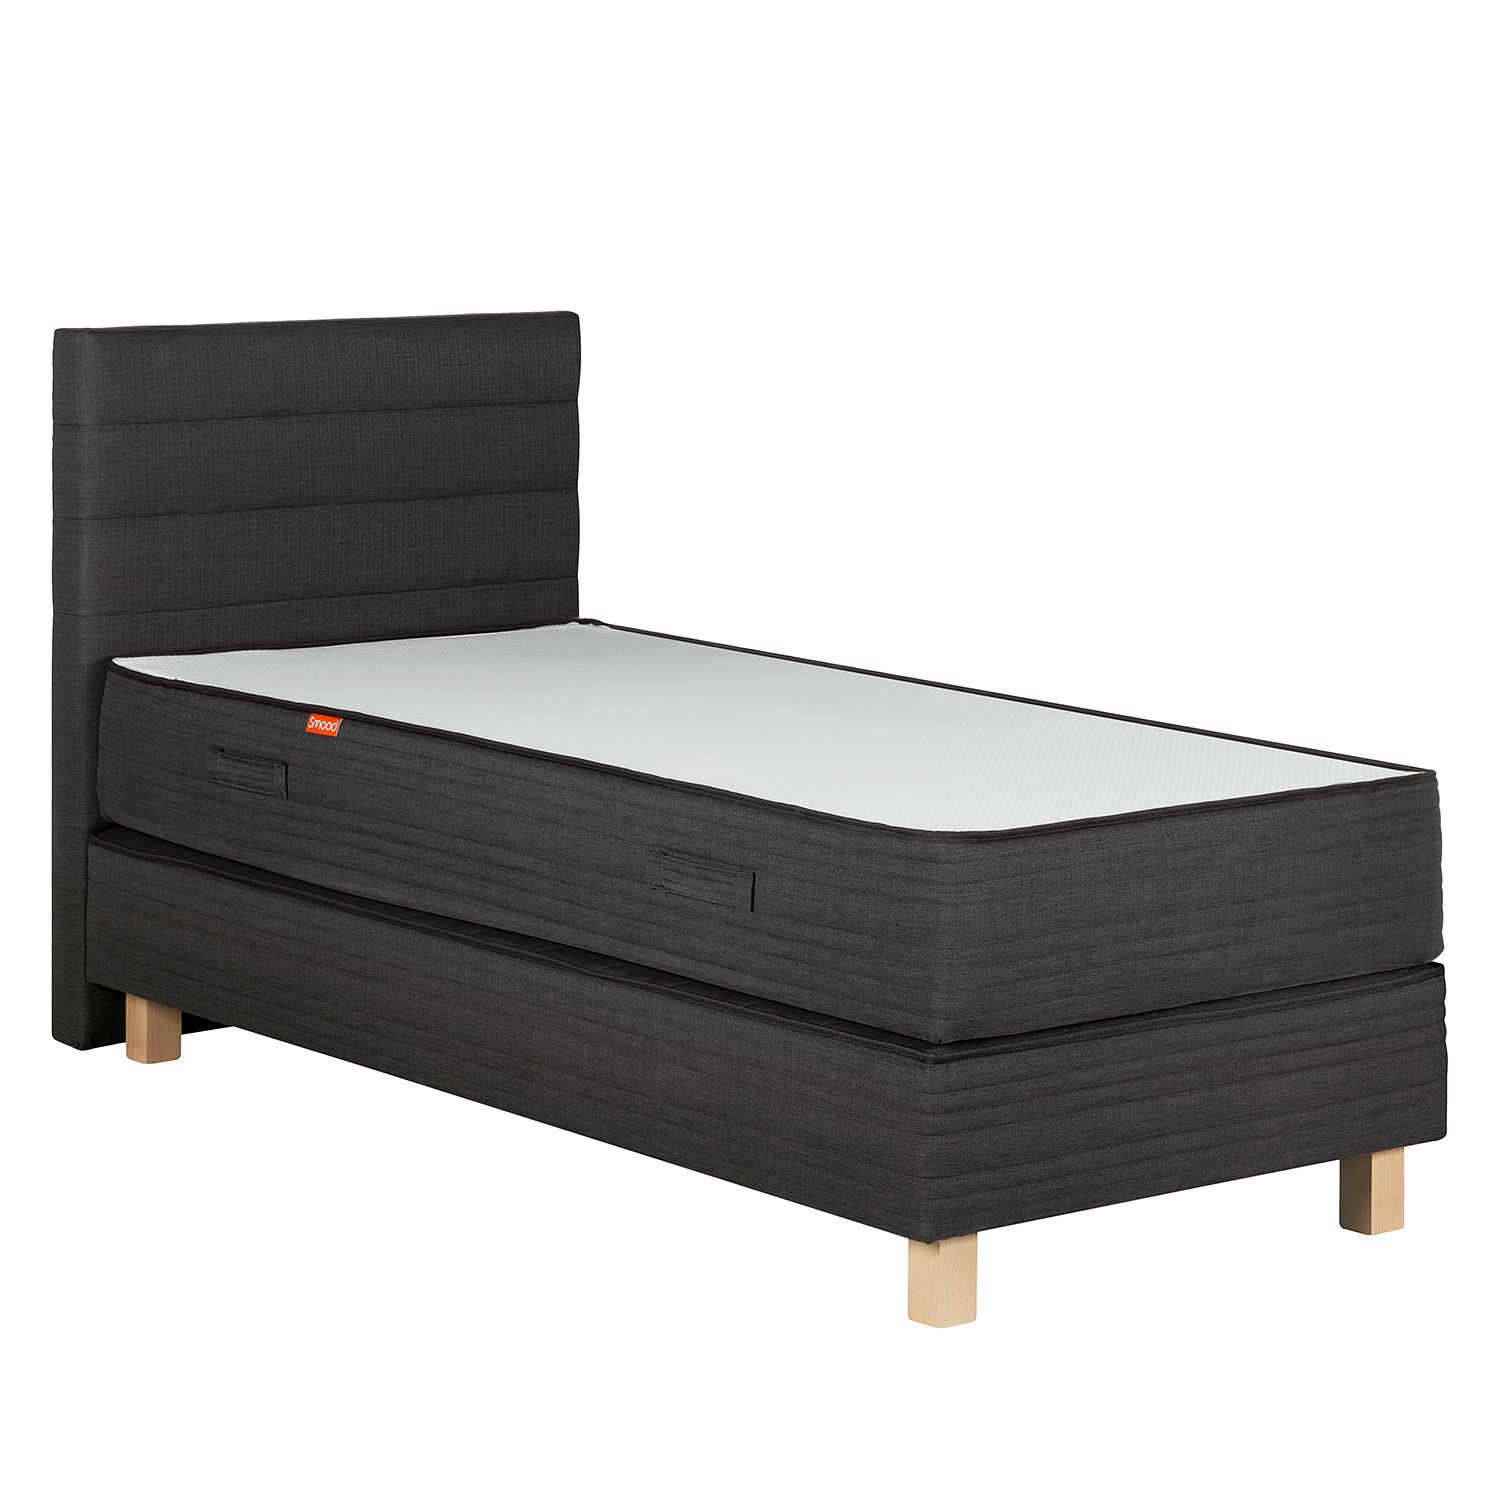 roller boxspringbett boris anthrazit weib preise und angebote ada premium. Black Bedroom Furniture Sets. Home Design Ideas